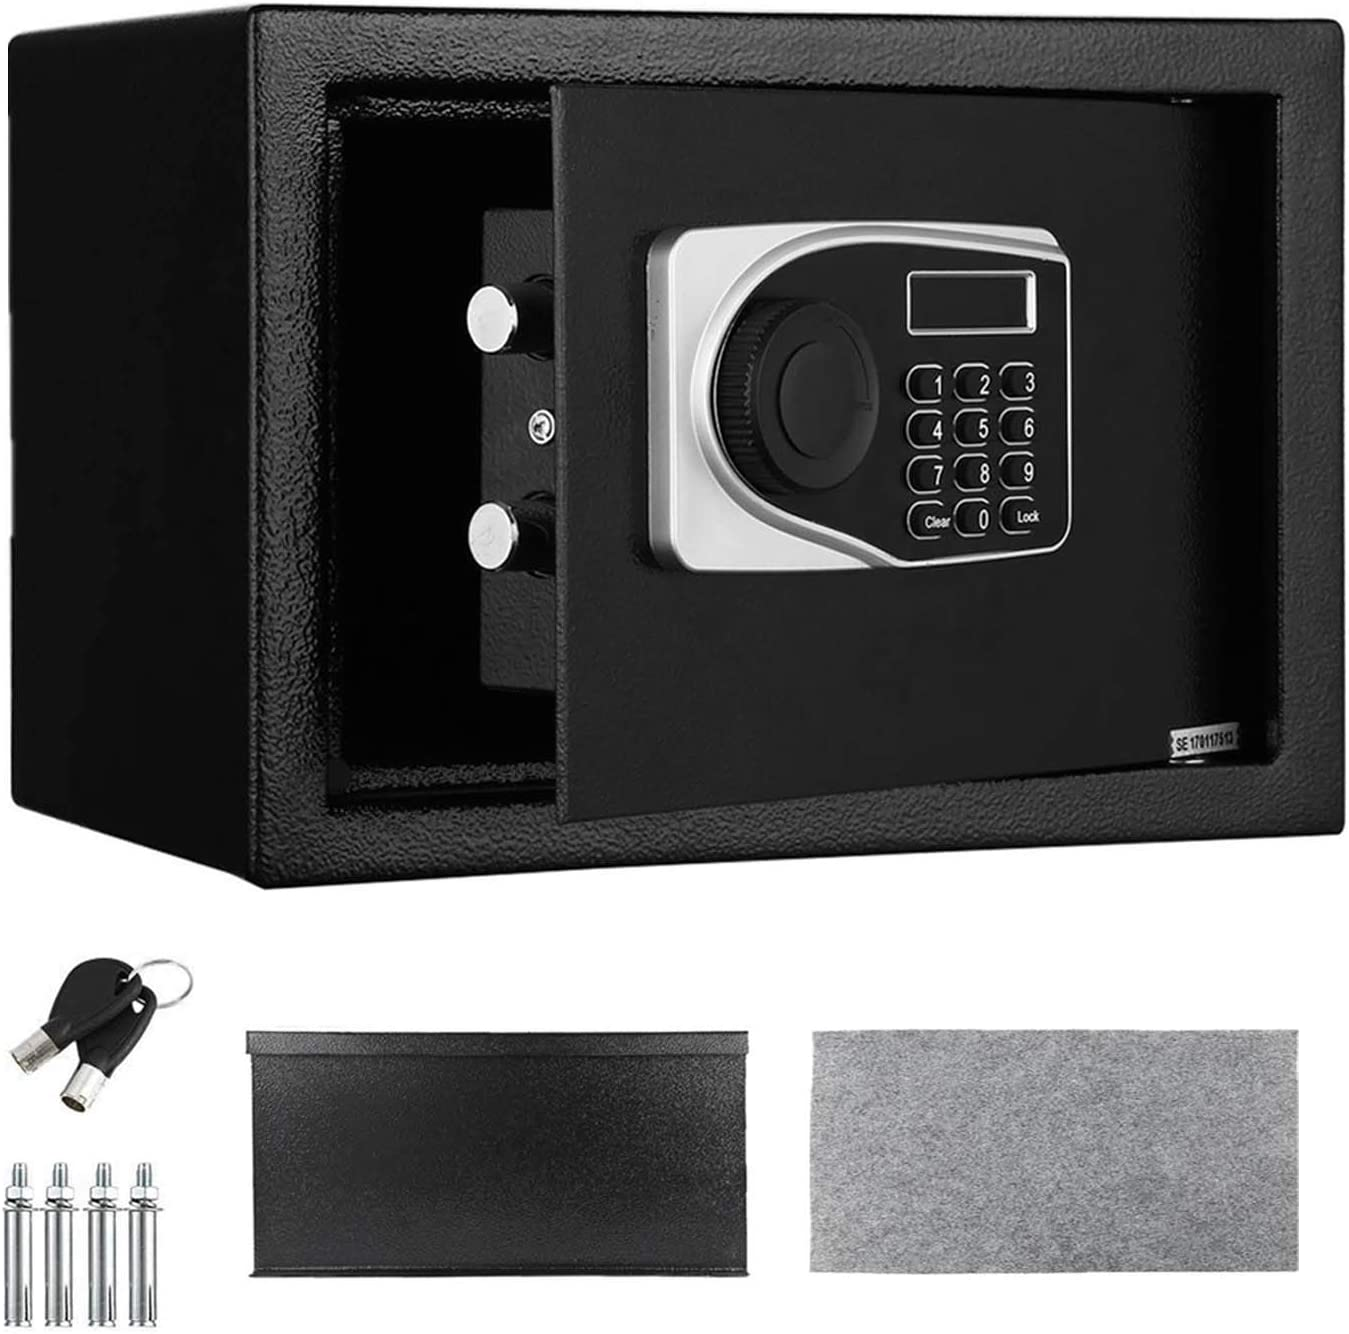 Electronic Security Safe Box, LED Digital Lock Box 0.57 Cubic Feet, 13.7 x 9.8 x 9.8 inches Key Combination Code Safe Box Steel Money Box for Home, Office, Hotel